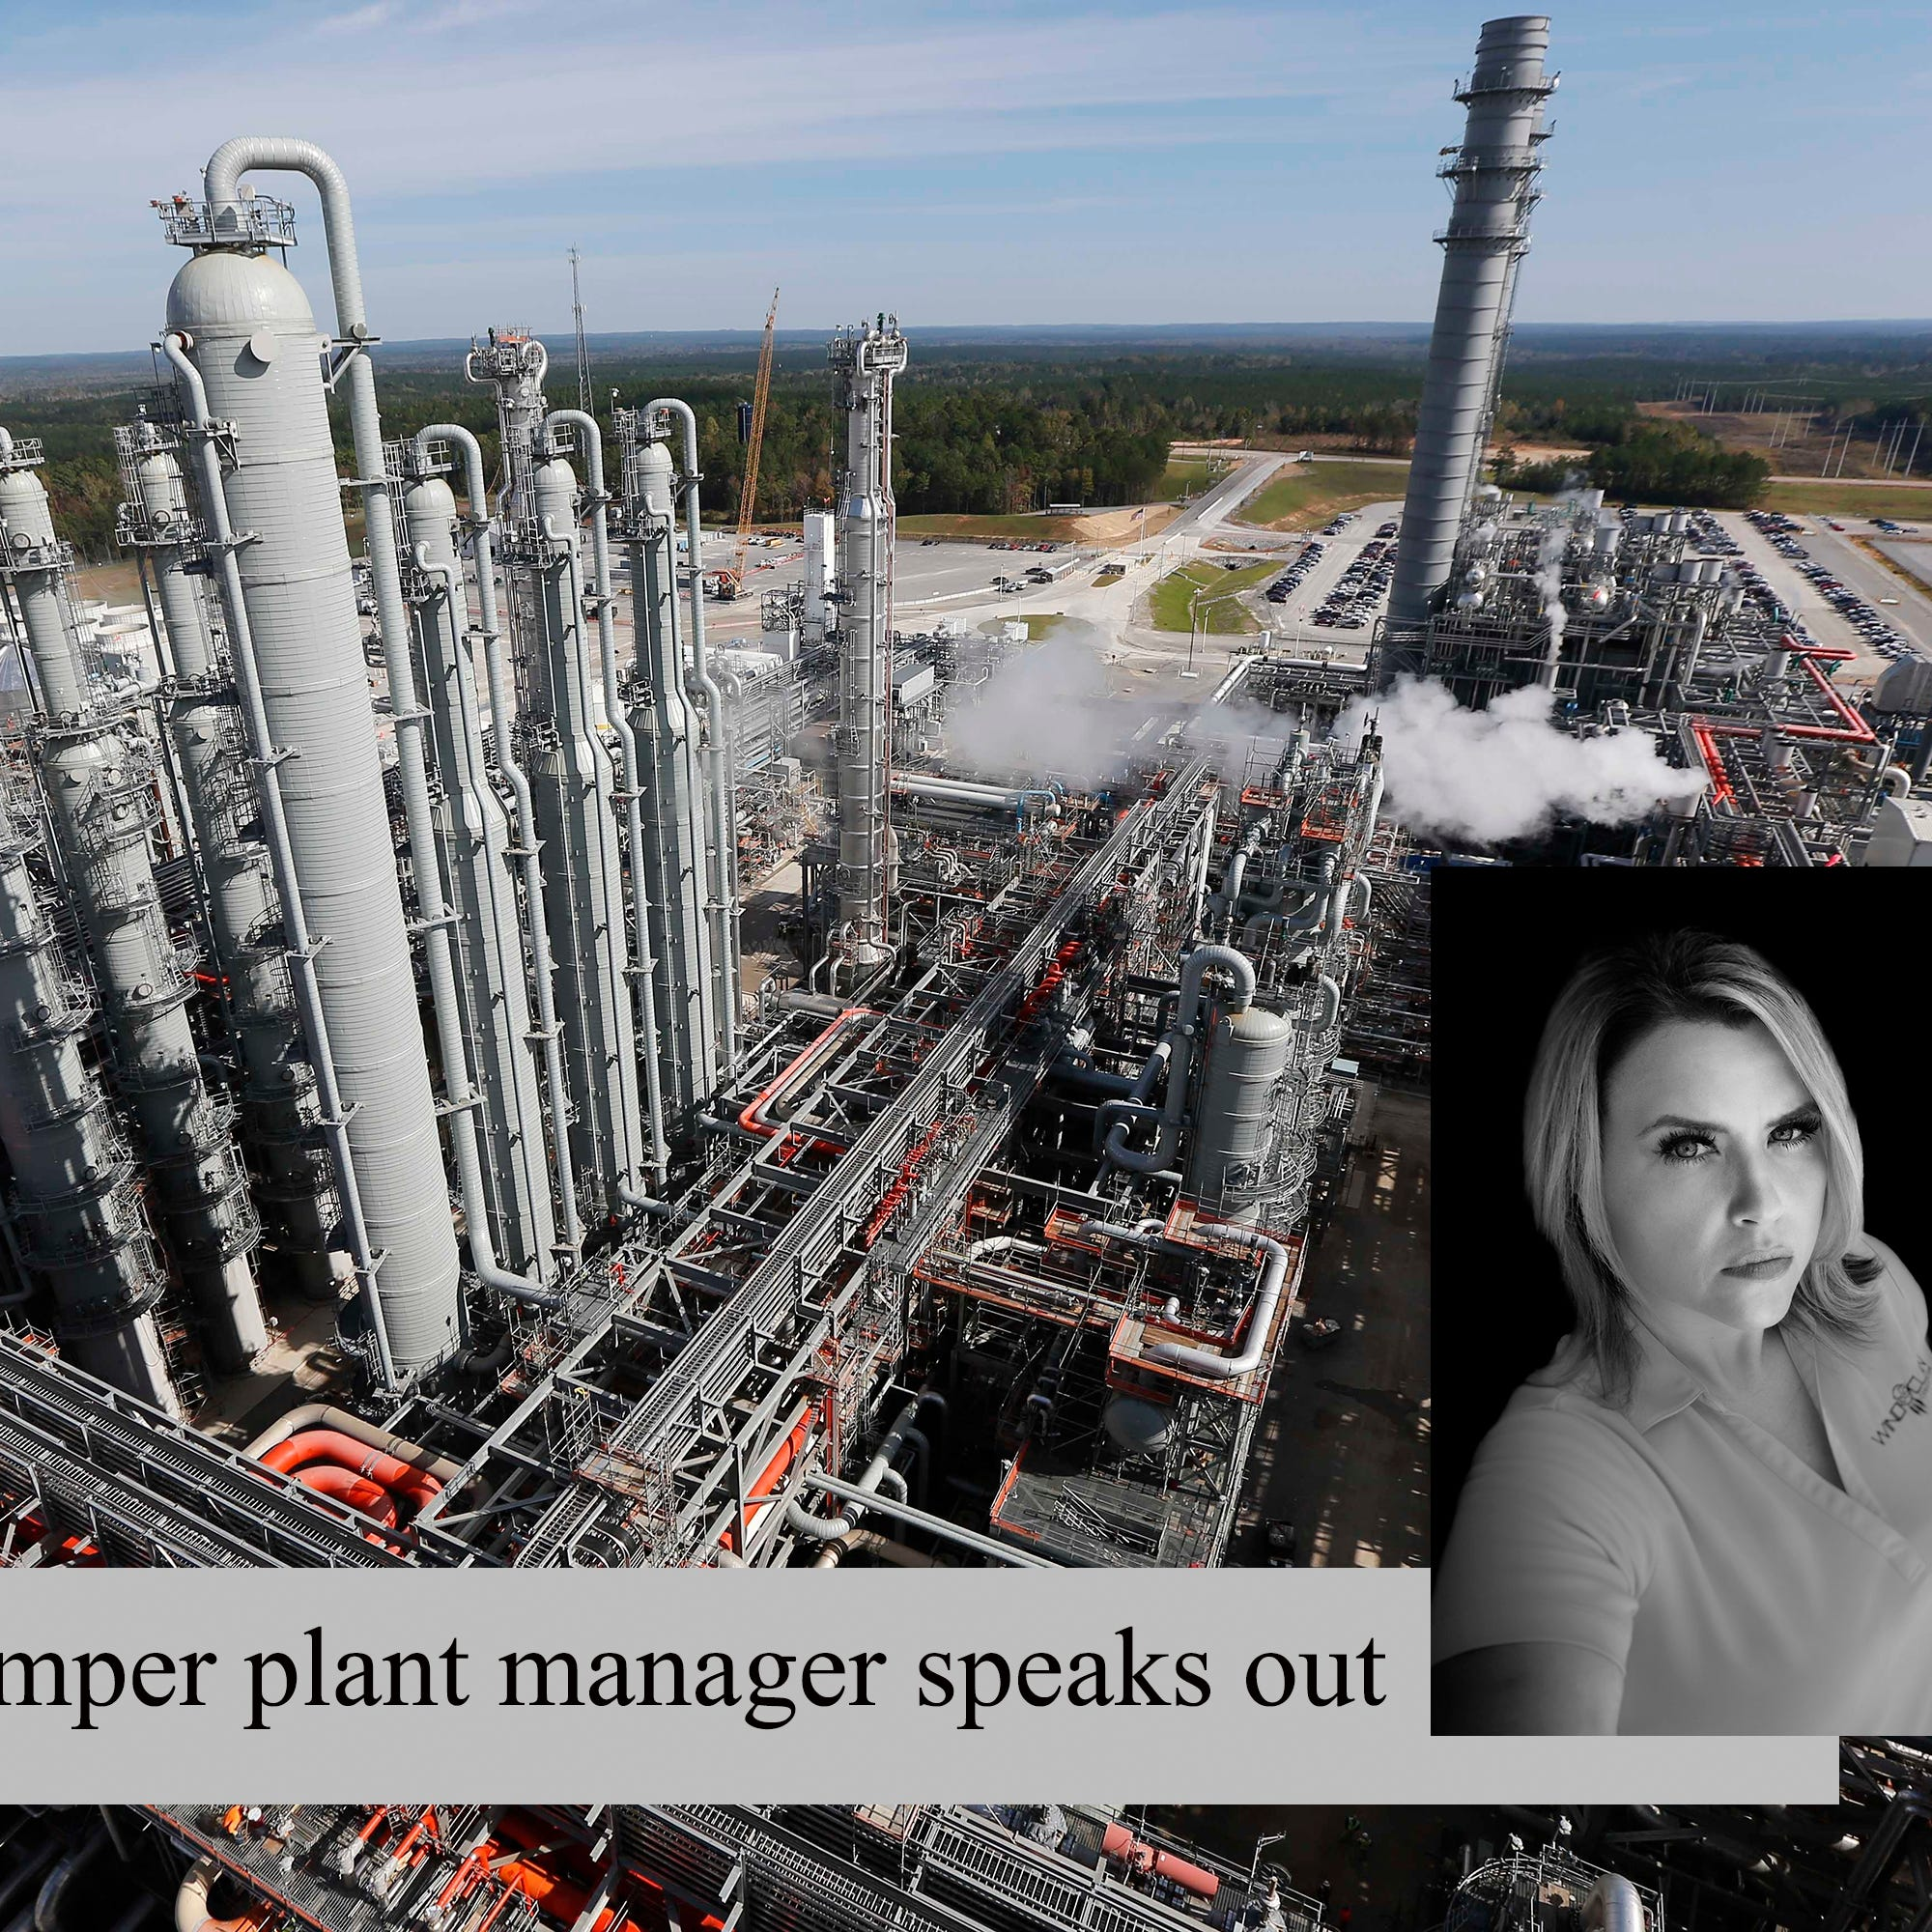 Ex-Kemper plant manager says execs ignored her warnings: 'It was essentially a cover-up'